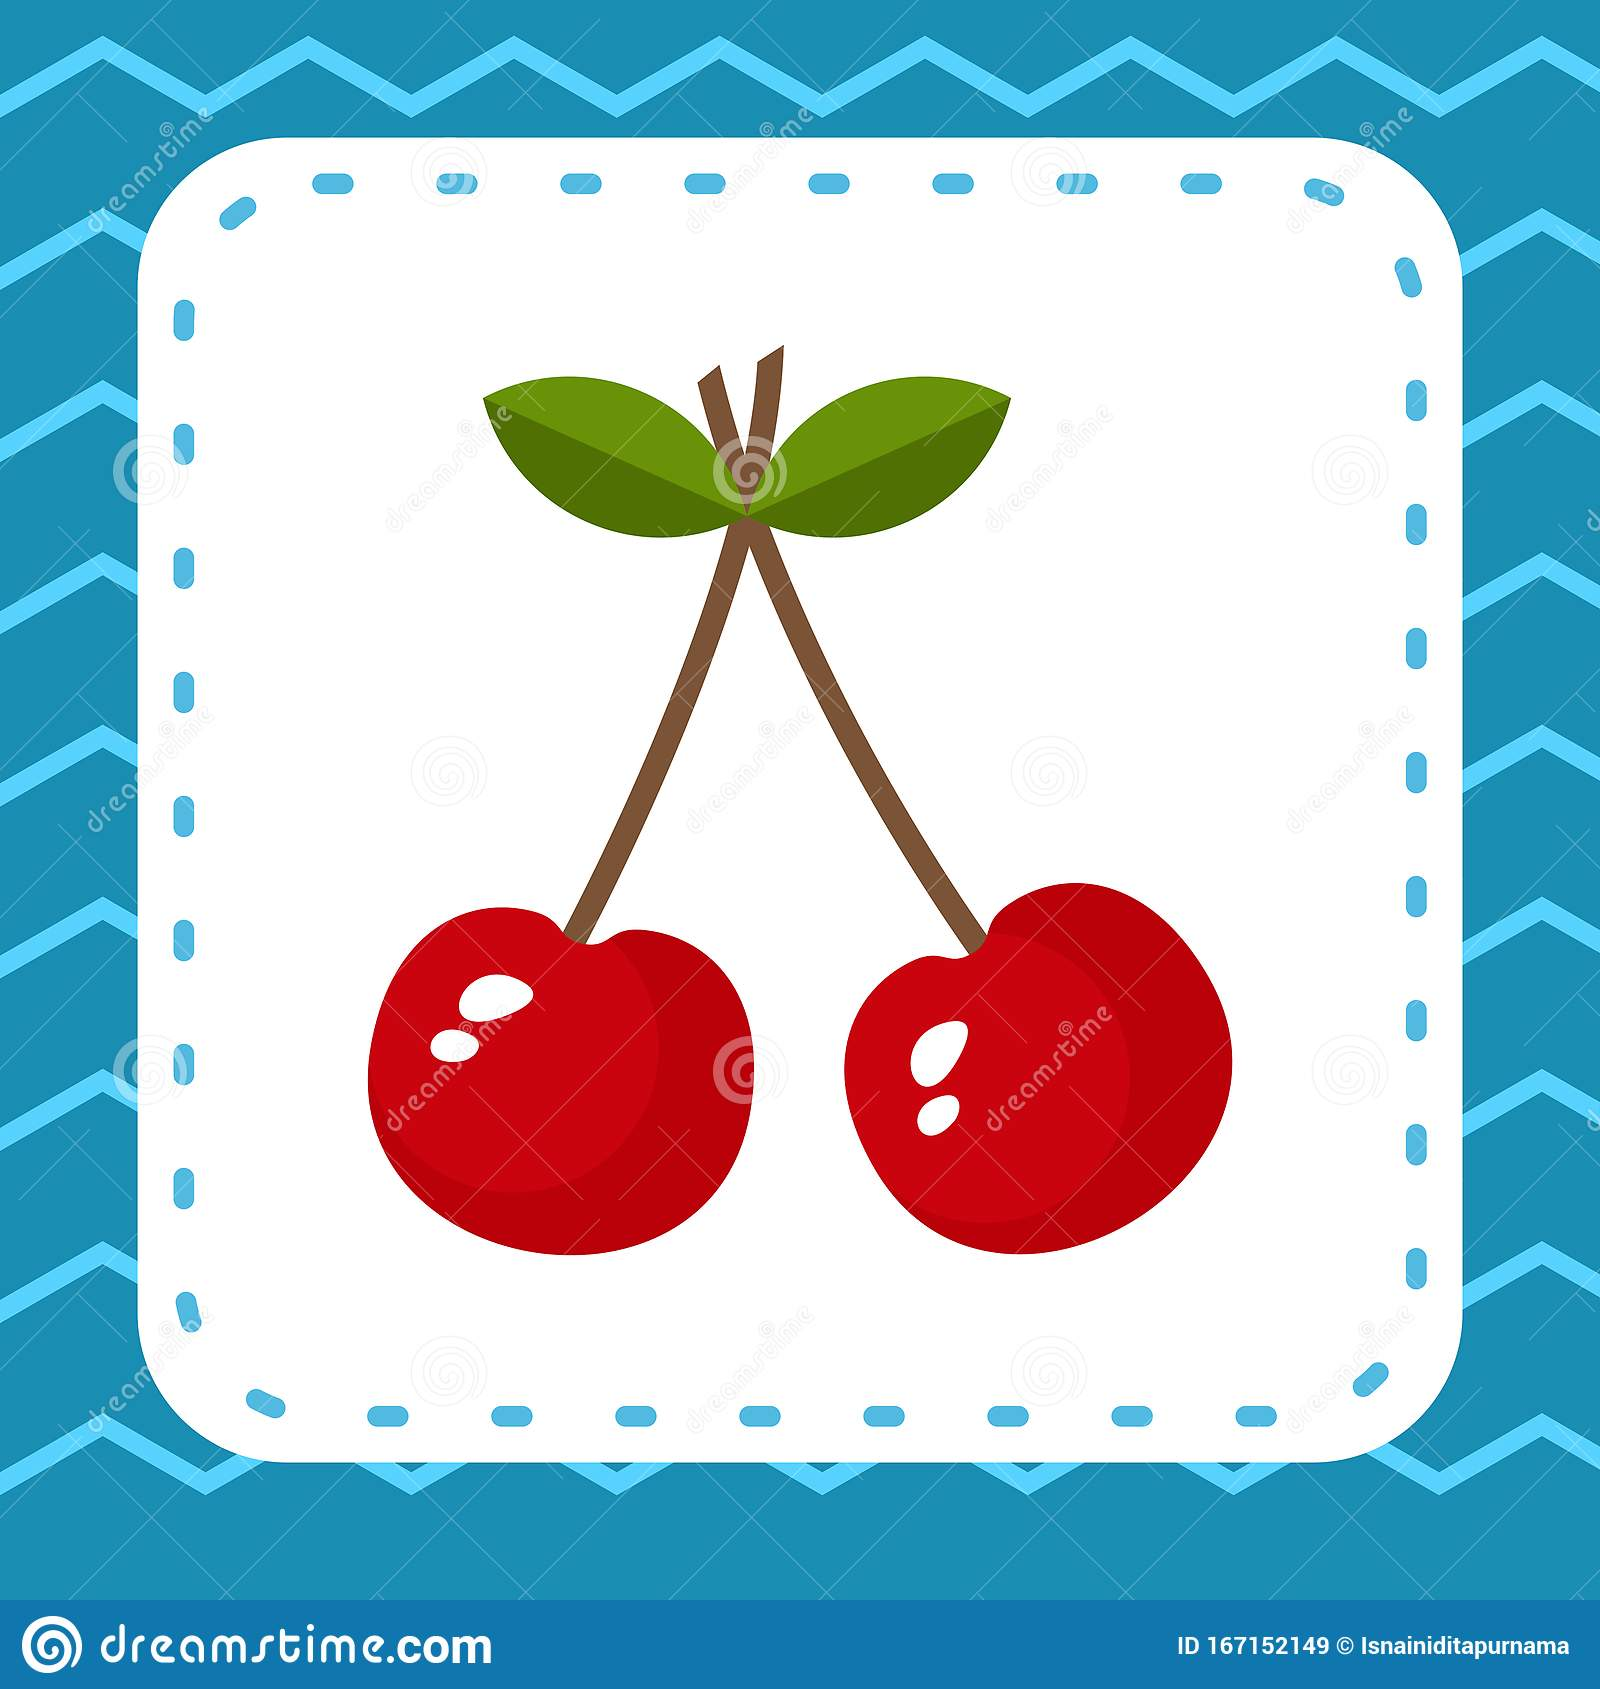 Cherry Fruits And Leaf Coloring Colorful For Childreen